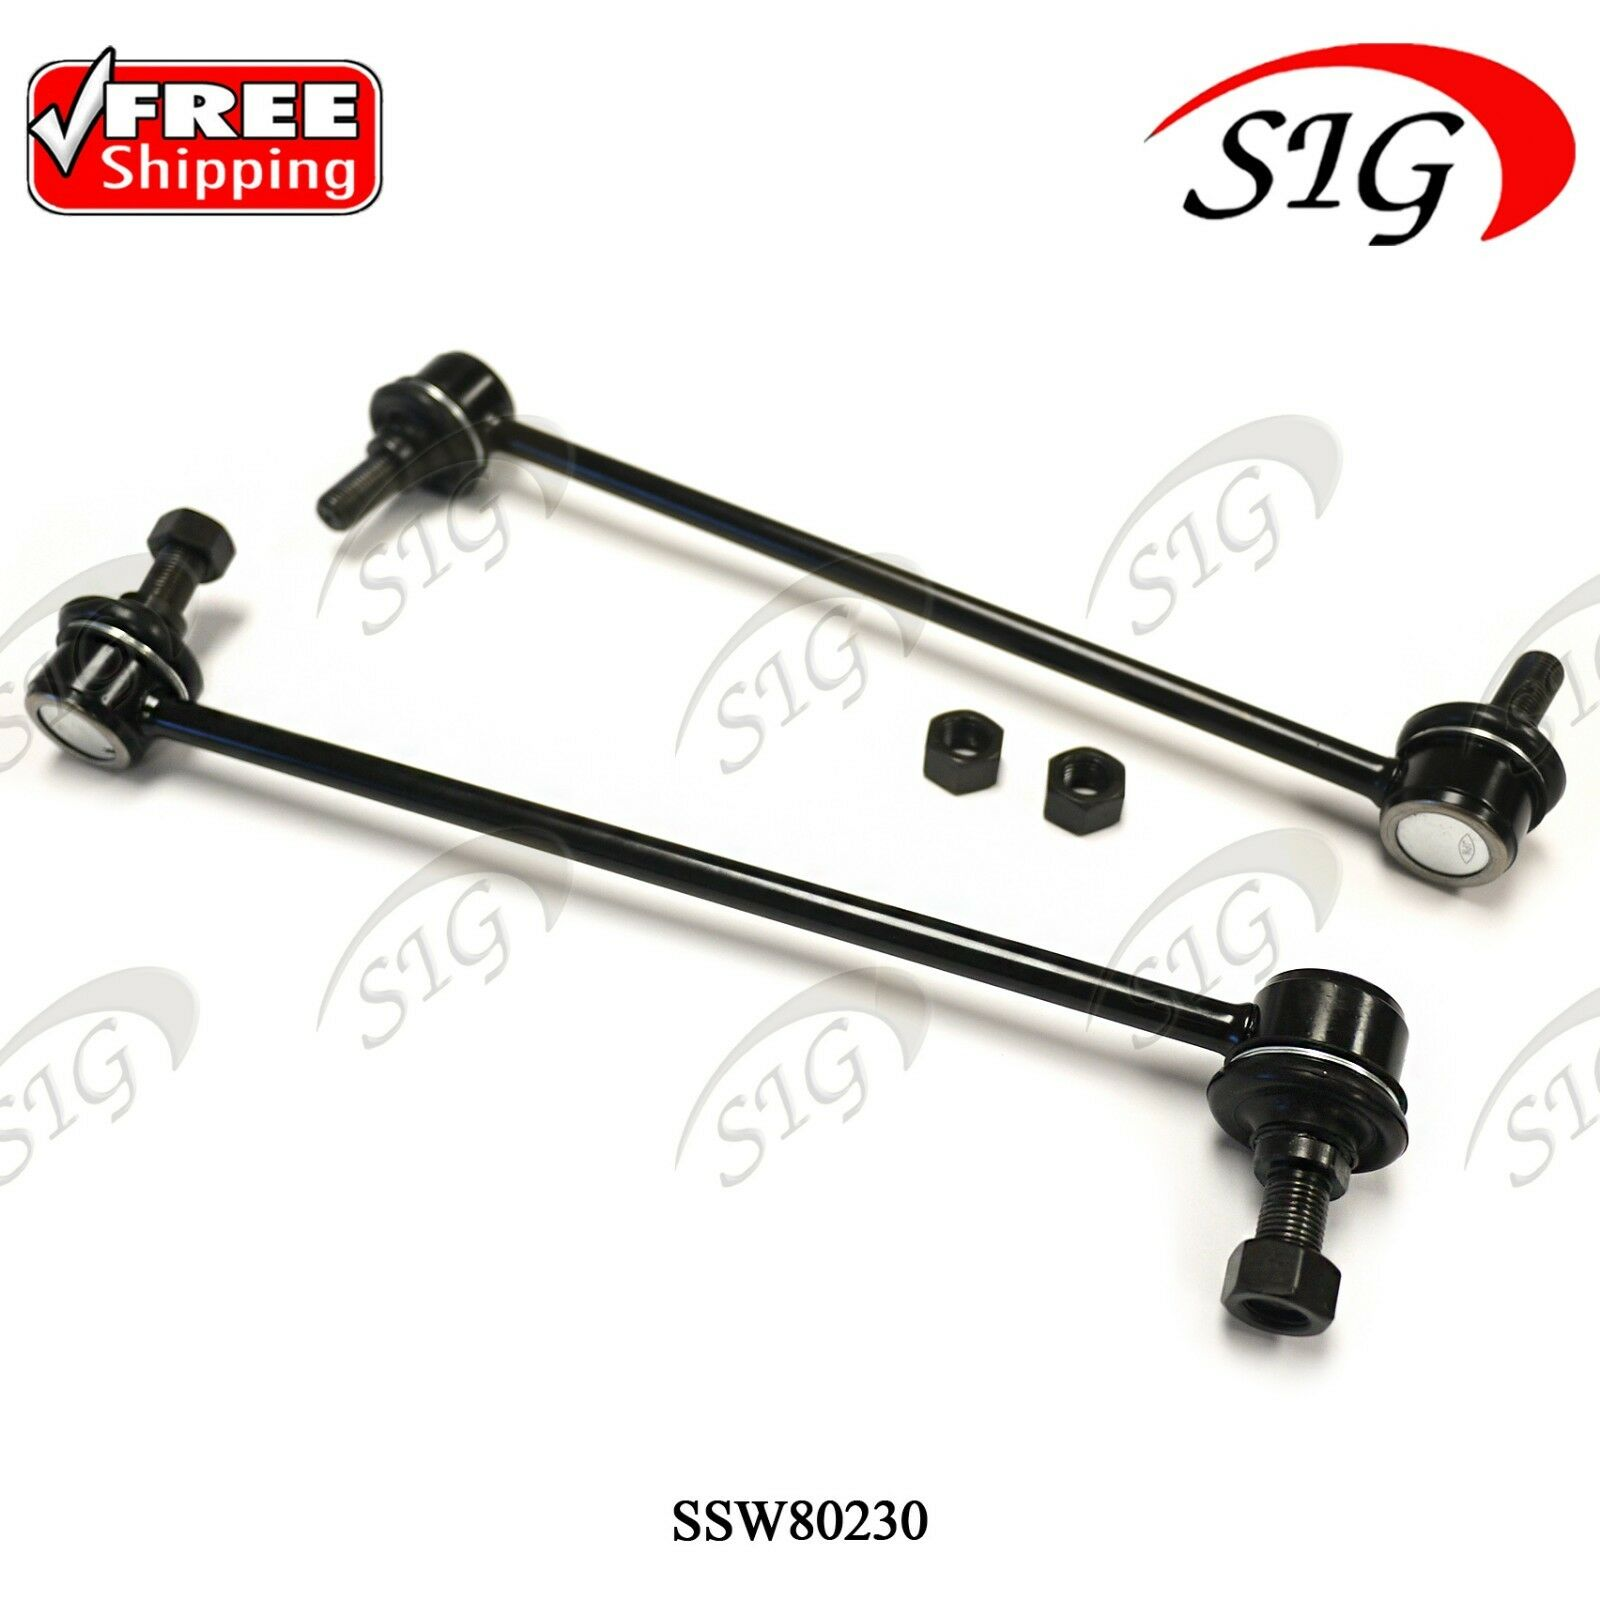 2X FRONT STABILIZER SWAY BAR LINK FOR TOYOTA COROLLA 2008 2009 2010 2011 2012